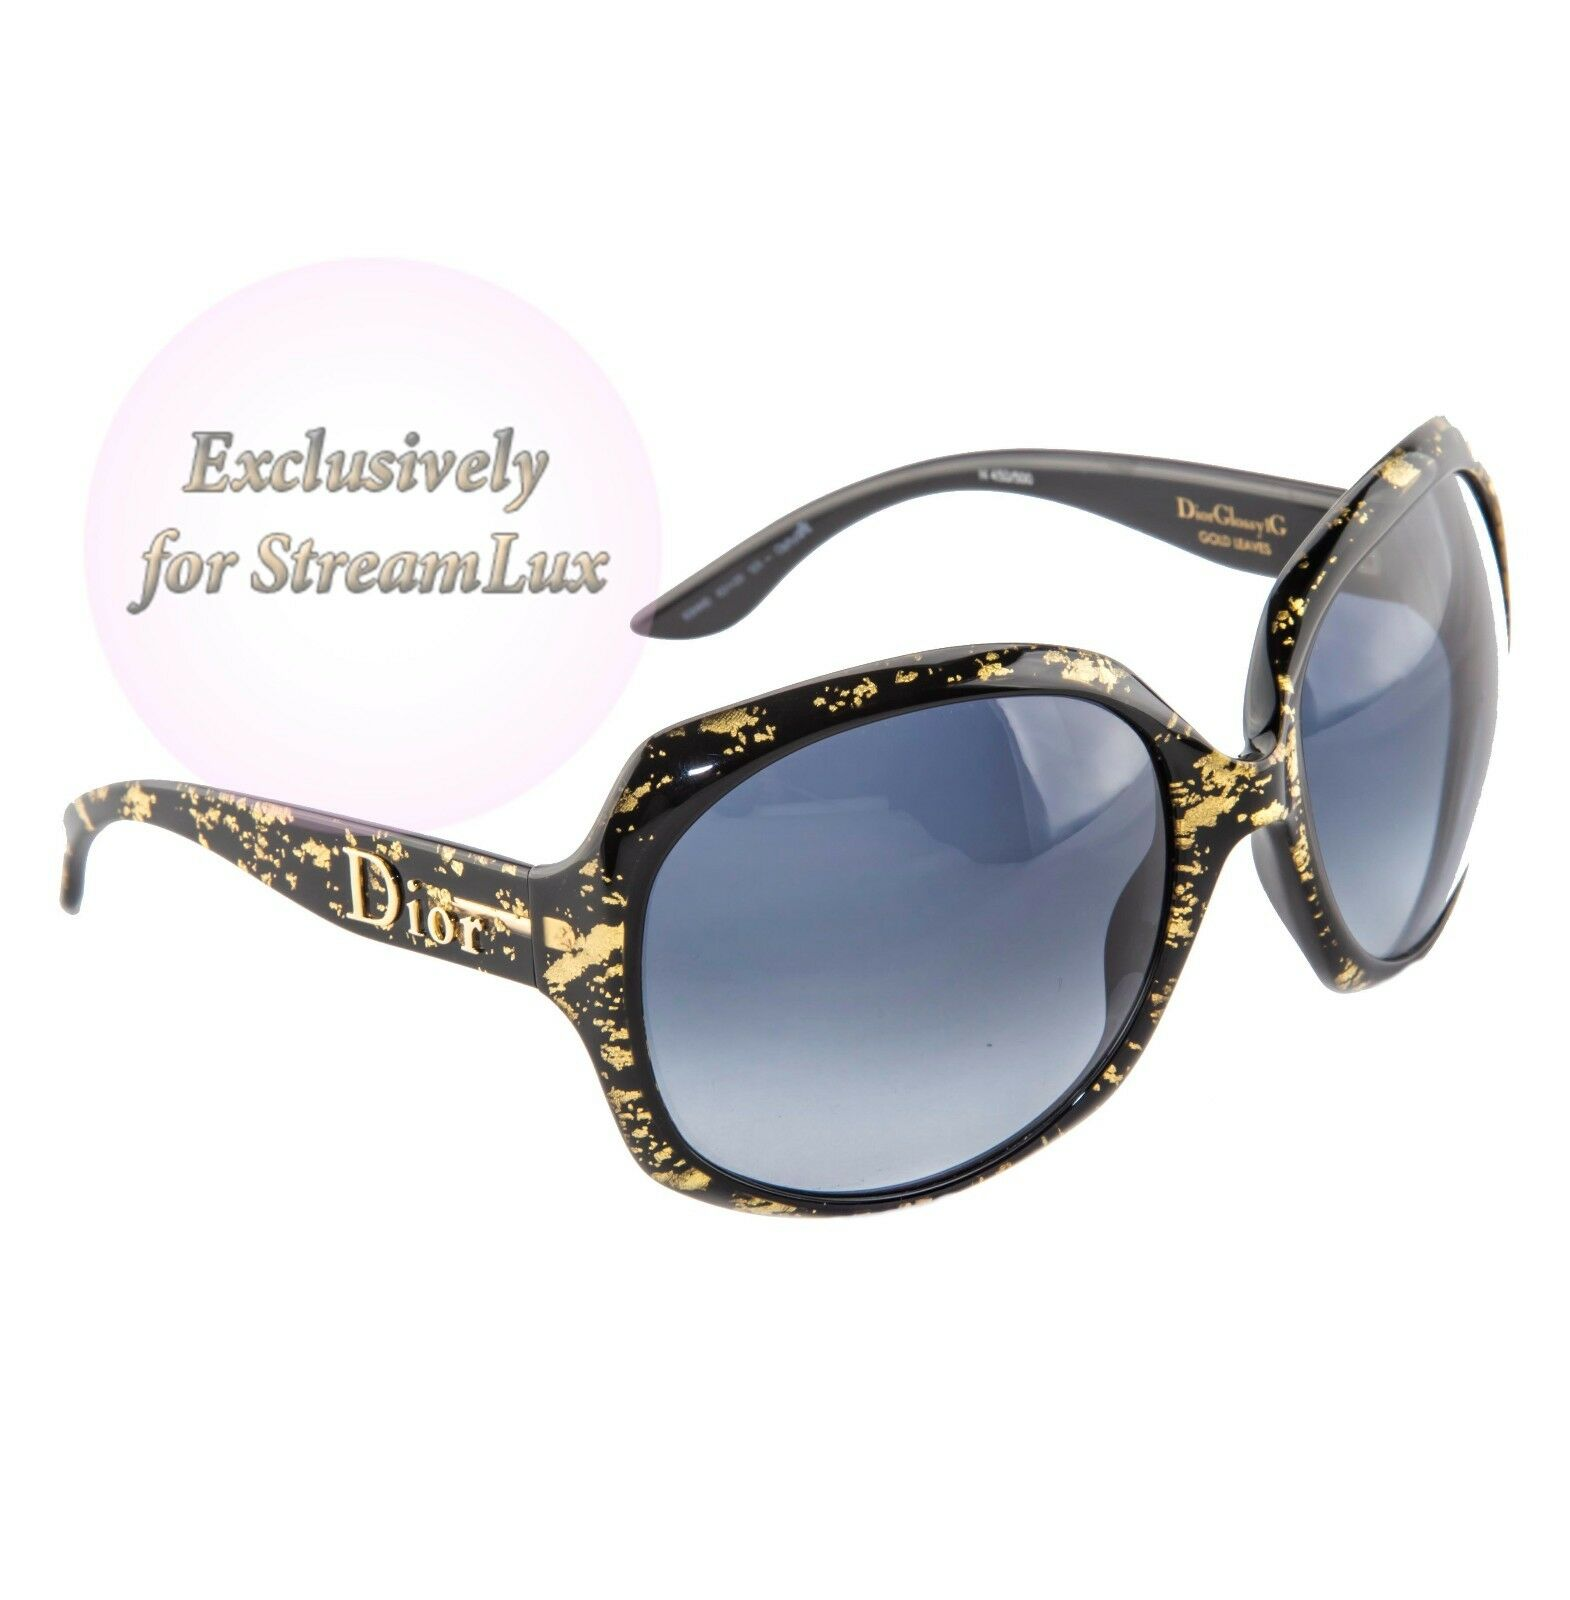 769a66133f1a ... CHRISTIAN DIOR GLOSSY 1G 93HHD Oversized Round Black Gold Women  Sunglasses фото ...